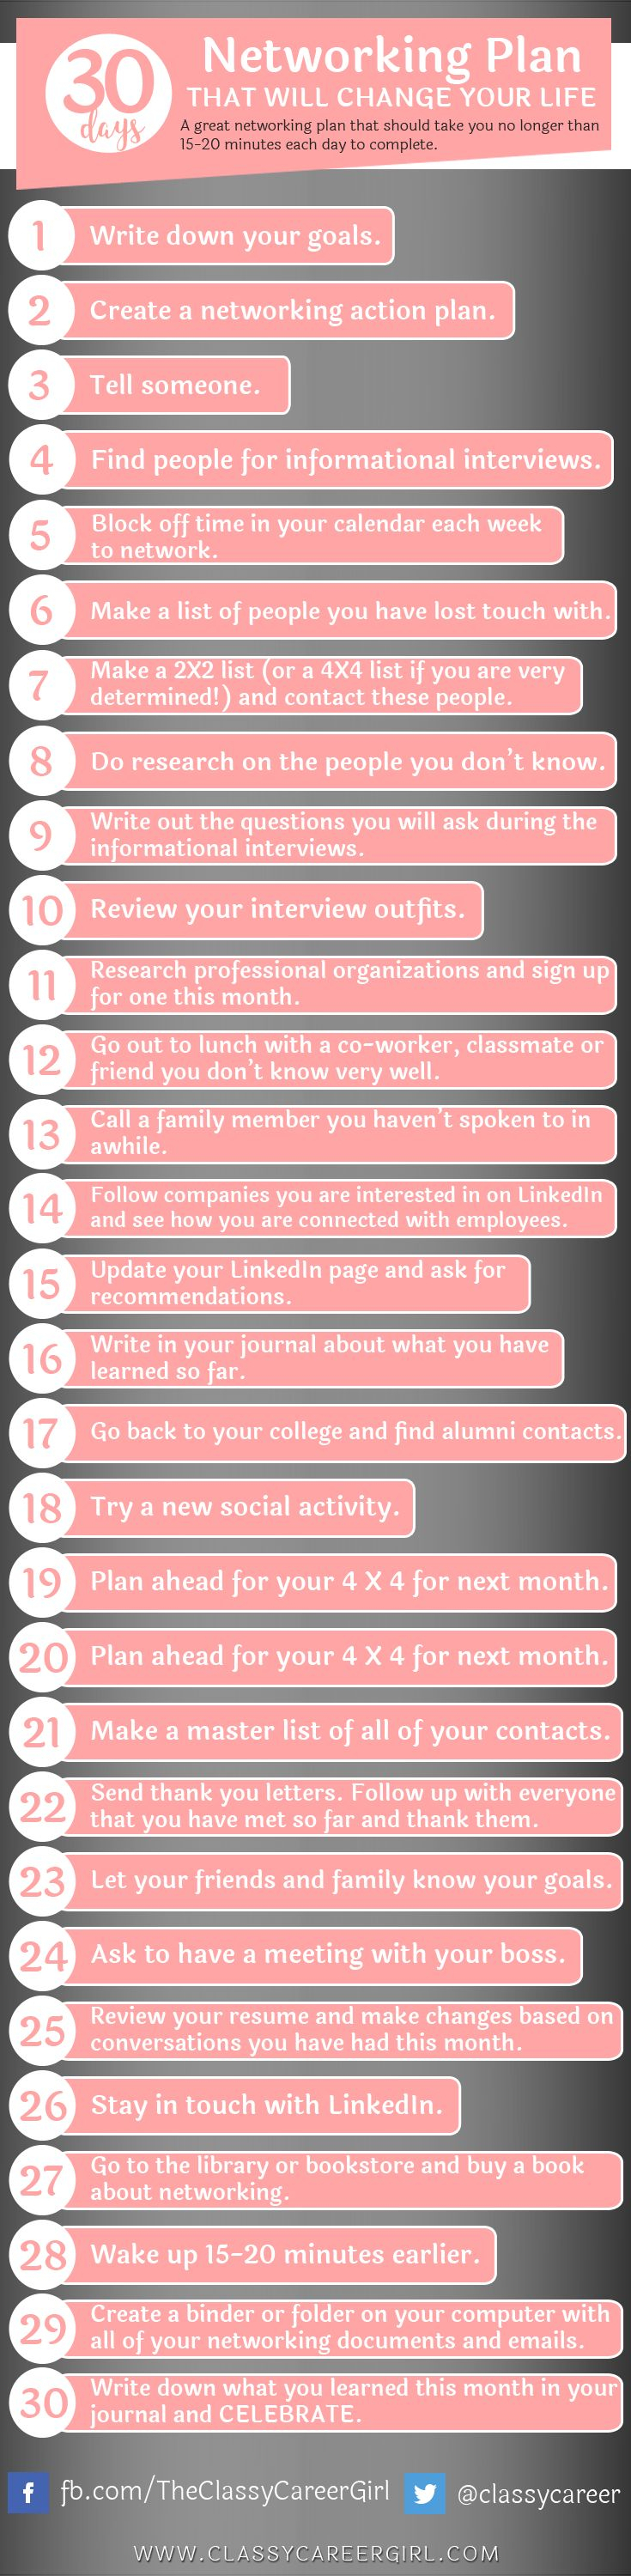 10 Stylish New Career Ideas At 30 194 best networking tips images on pinterest career advice